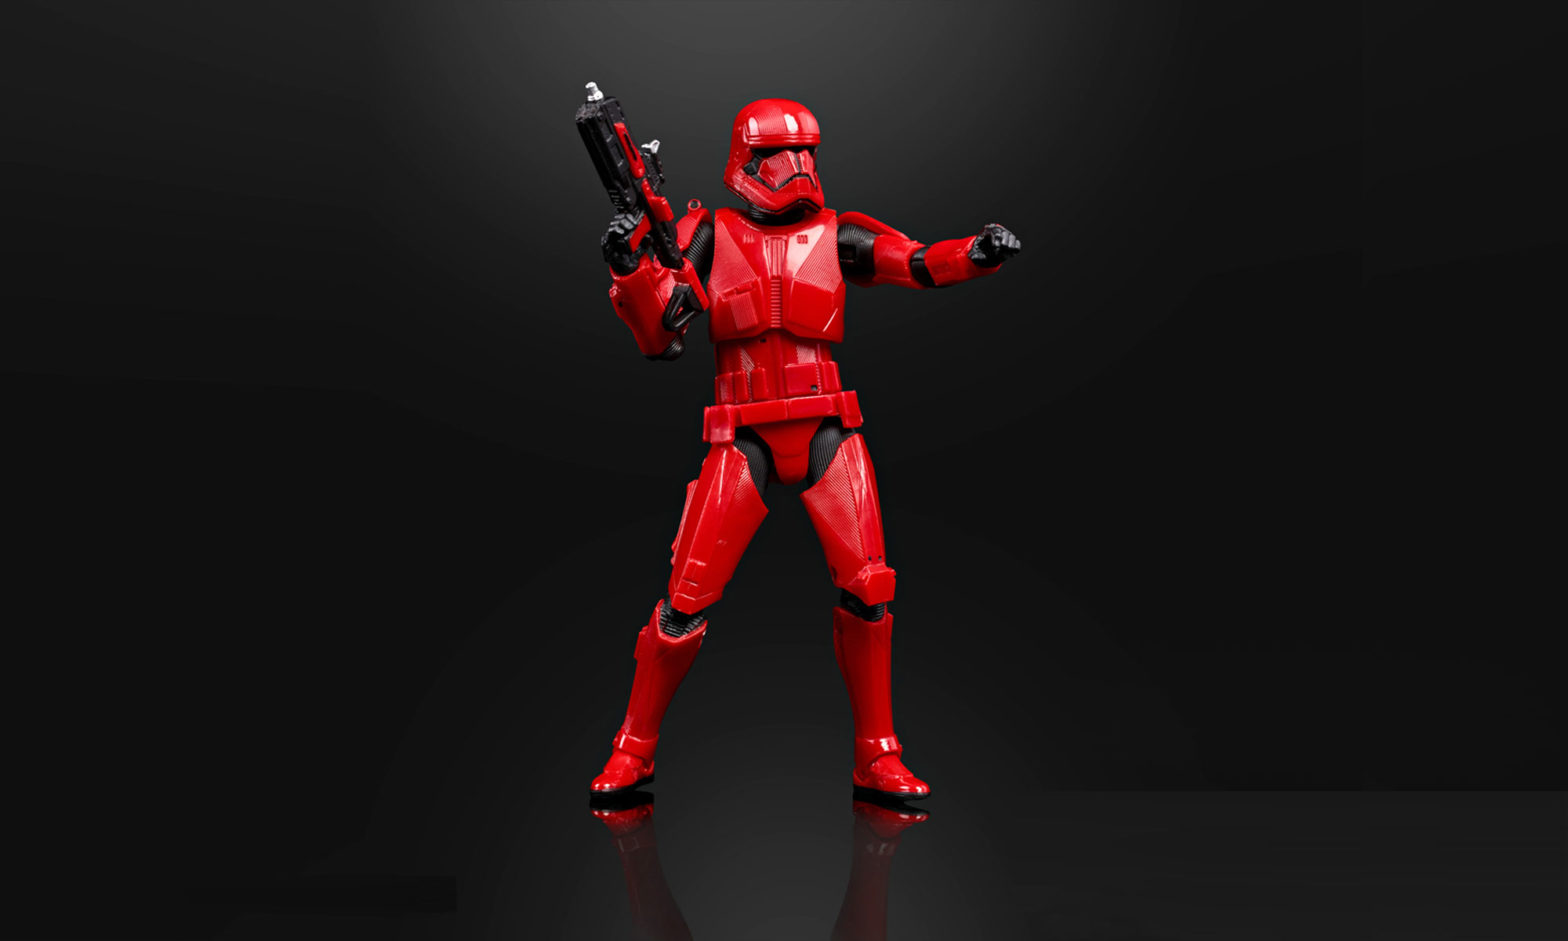 Hasbro and Hot Toys Sith Trooper Action Figure